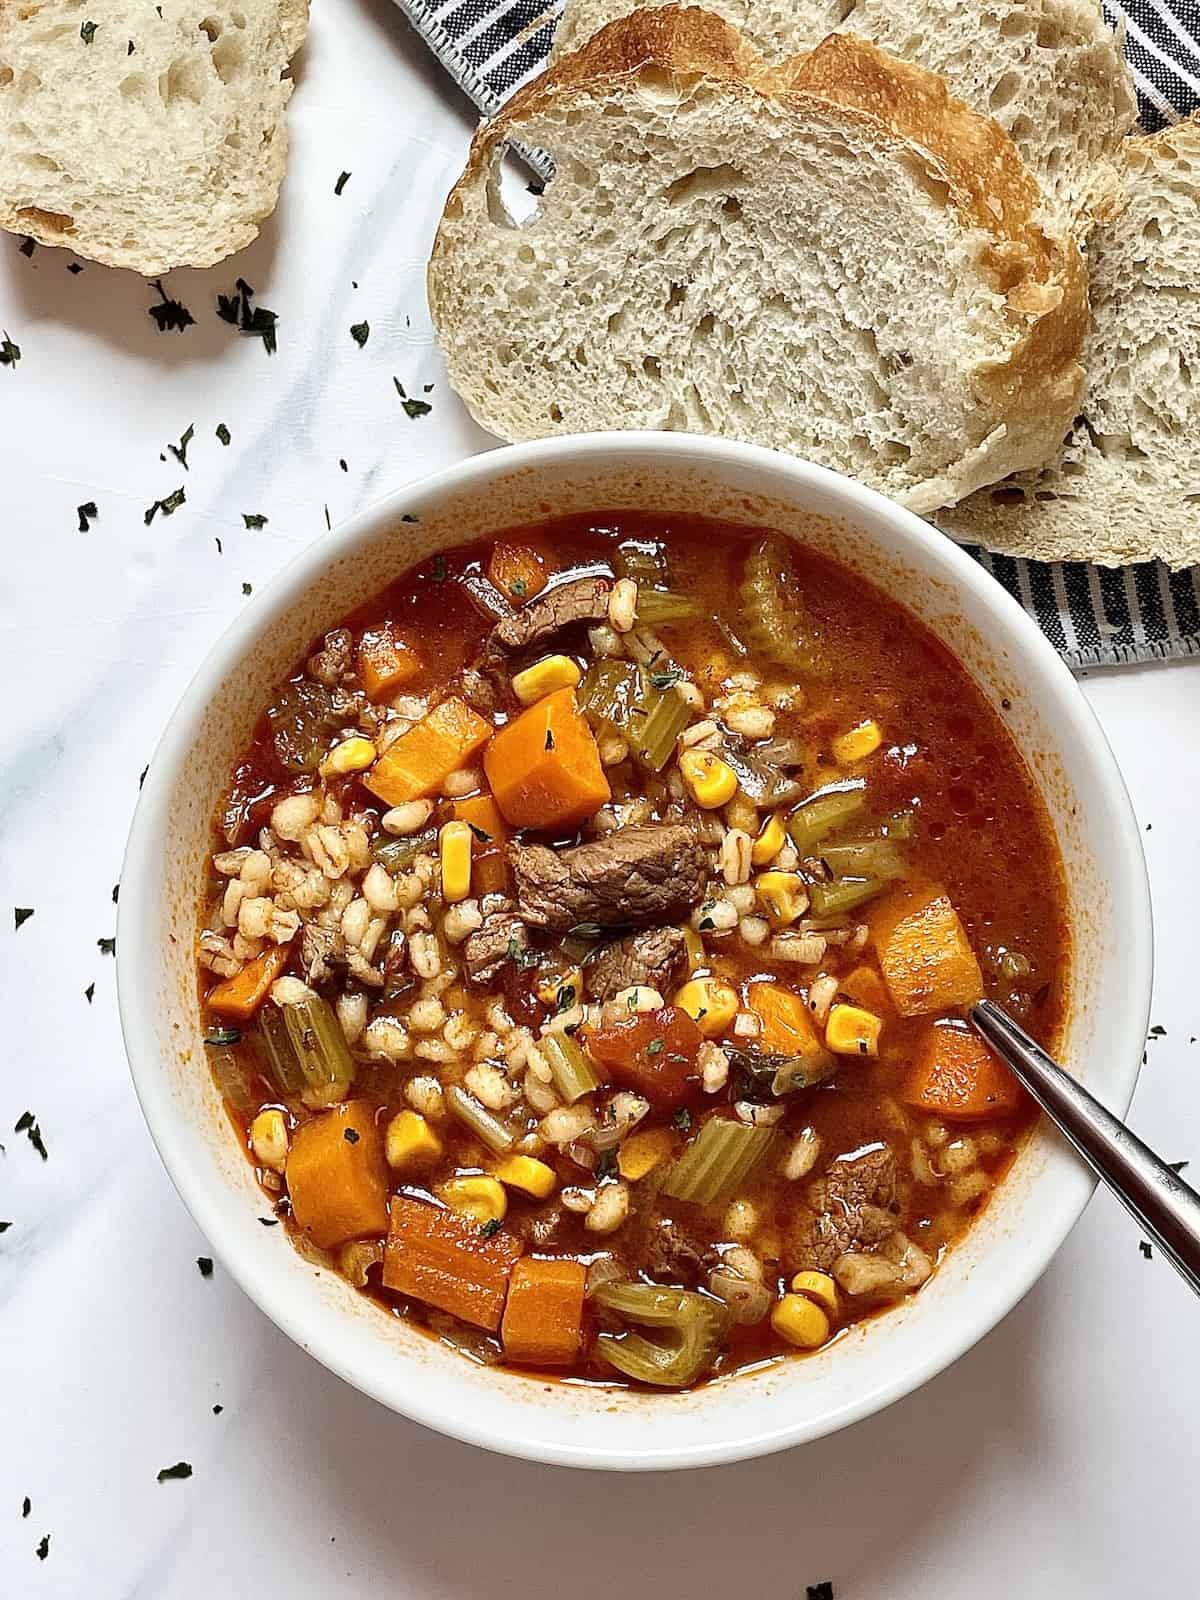 instant pot beef and barley soup in a white bowl on a white background, surrounded by sliced bread and parsley flakes